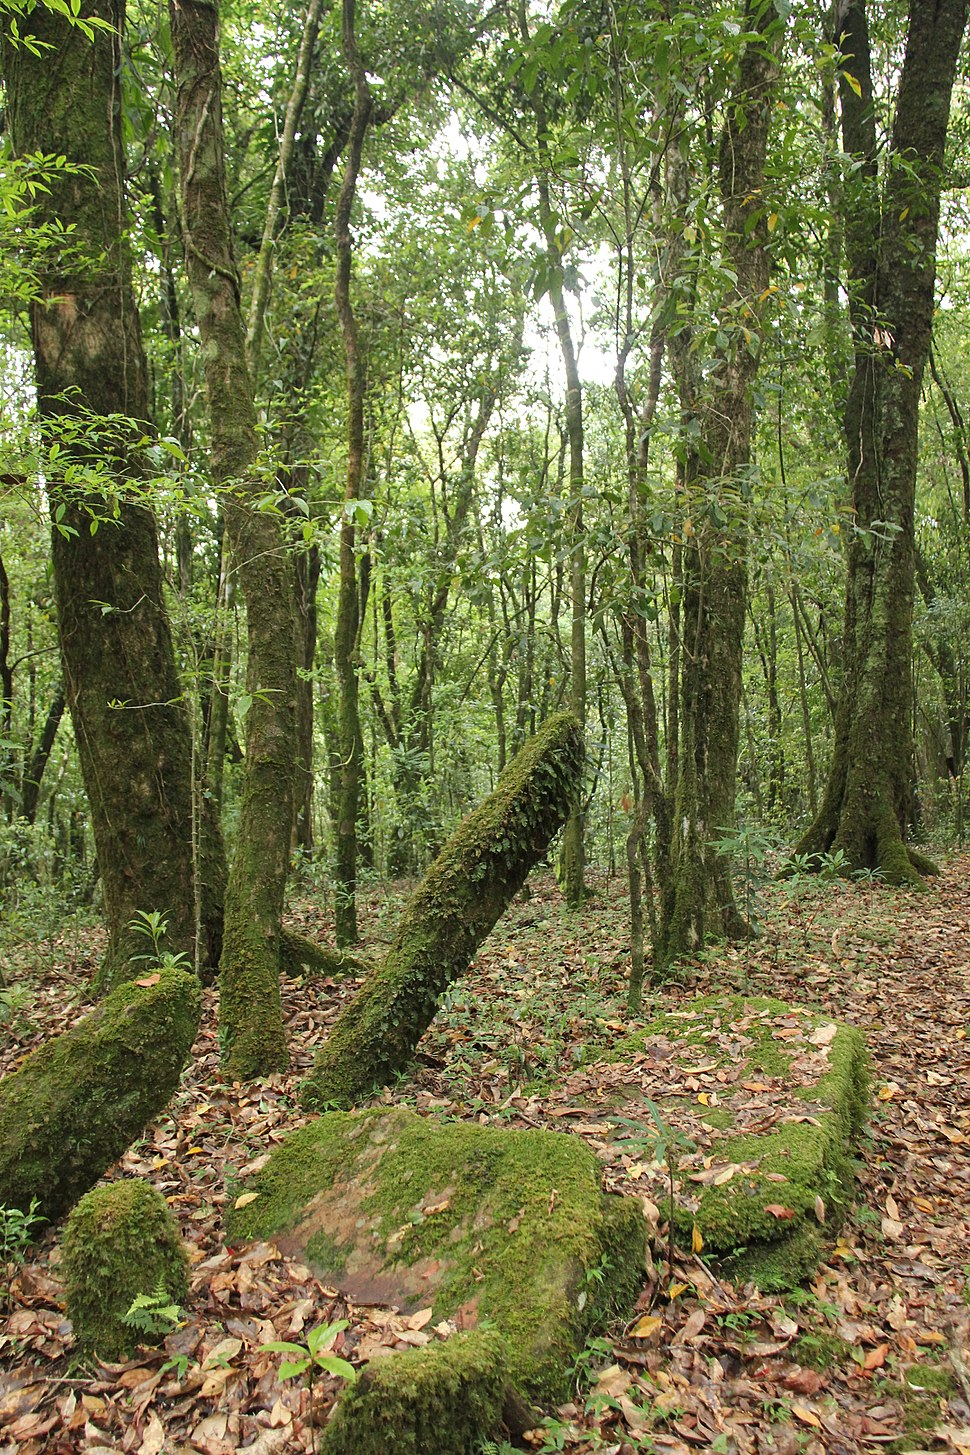 Ancient monoliths in Mawphlang sacred grove